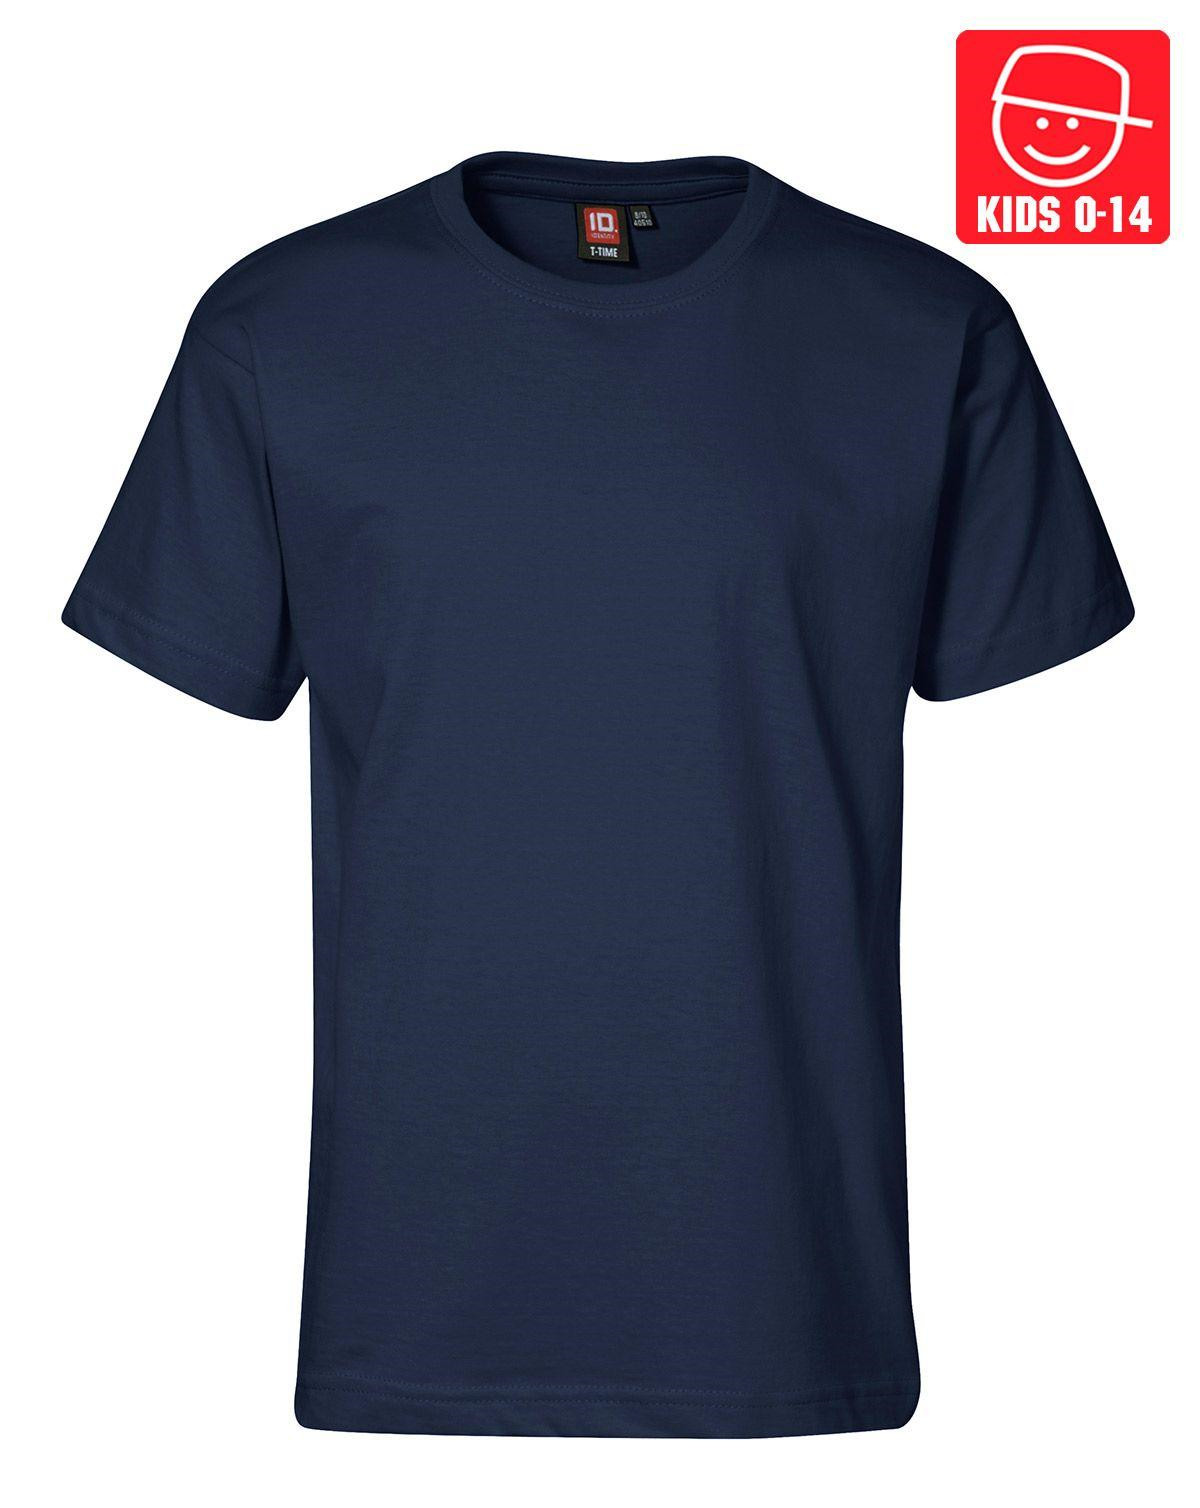 Image of   ID T-TIME T-shirt (Navy, 122)